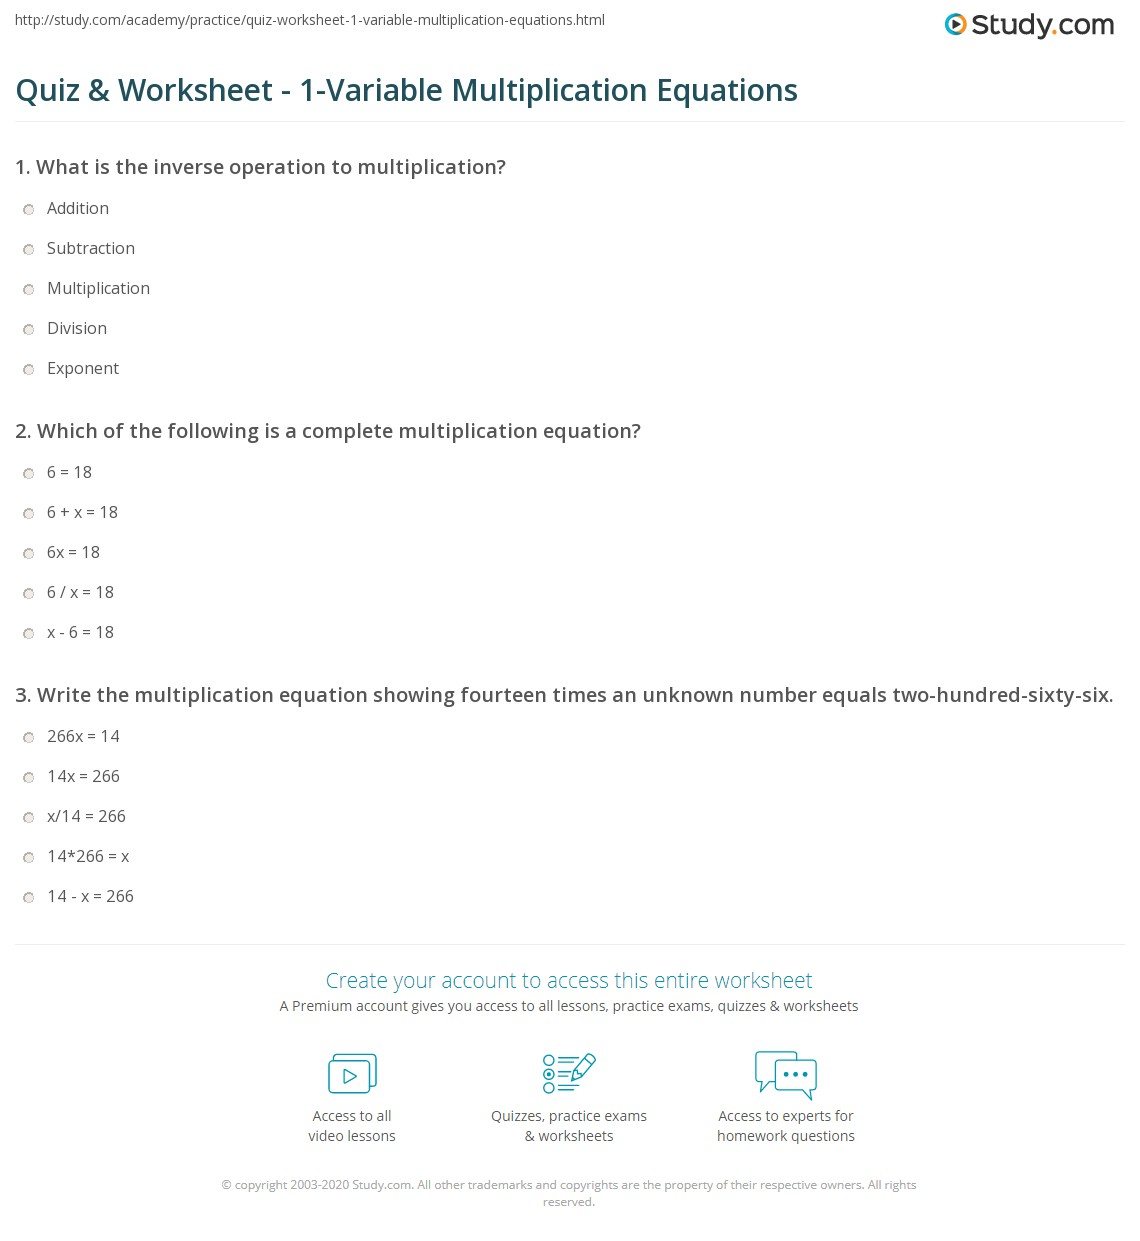 math worksheet : quiz  worksheet  1 variable multiplication equations  study  : Solving Multiplication And Division Equations Worksheets